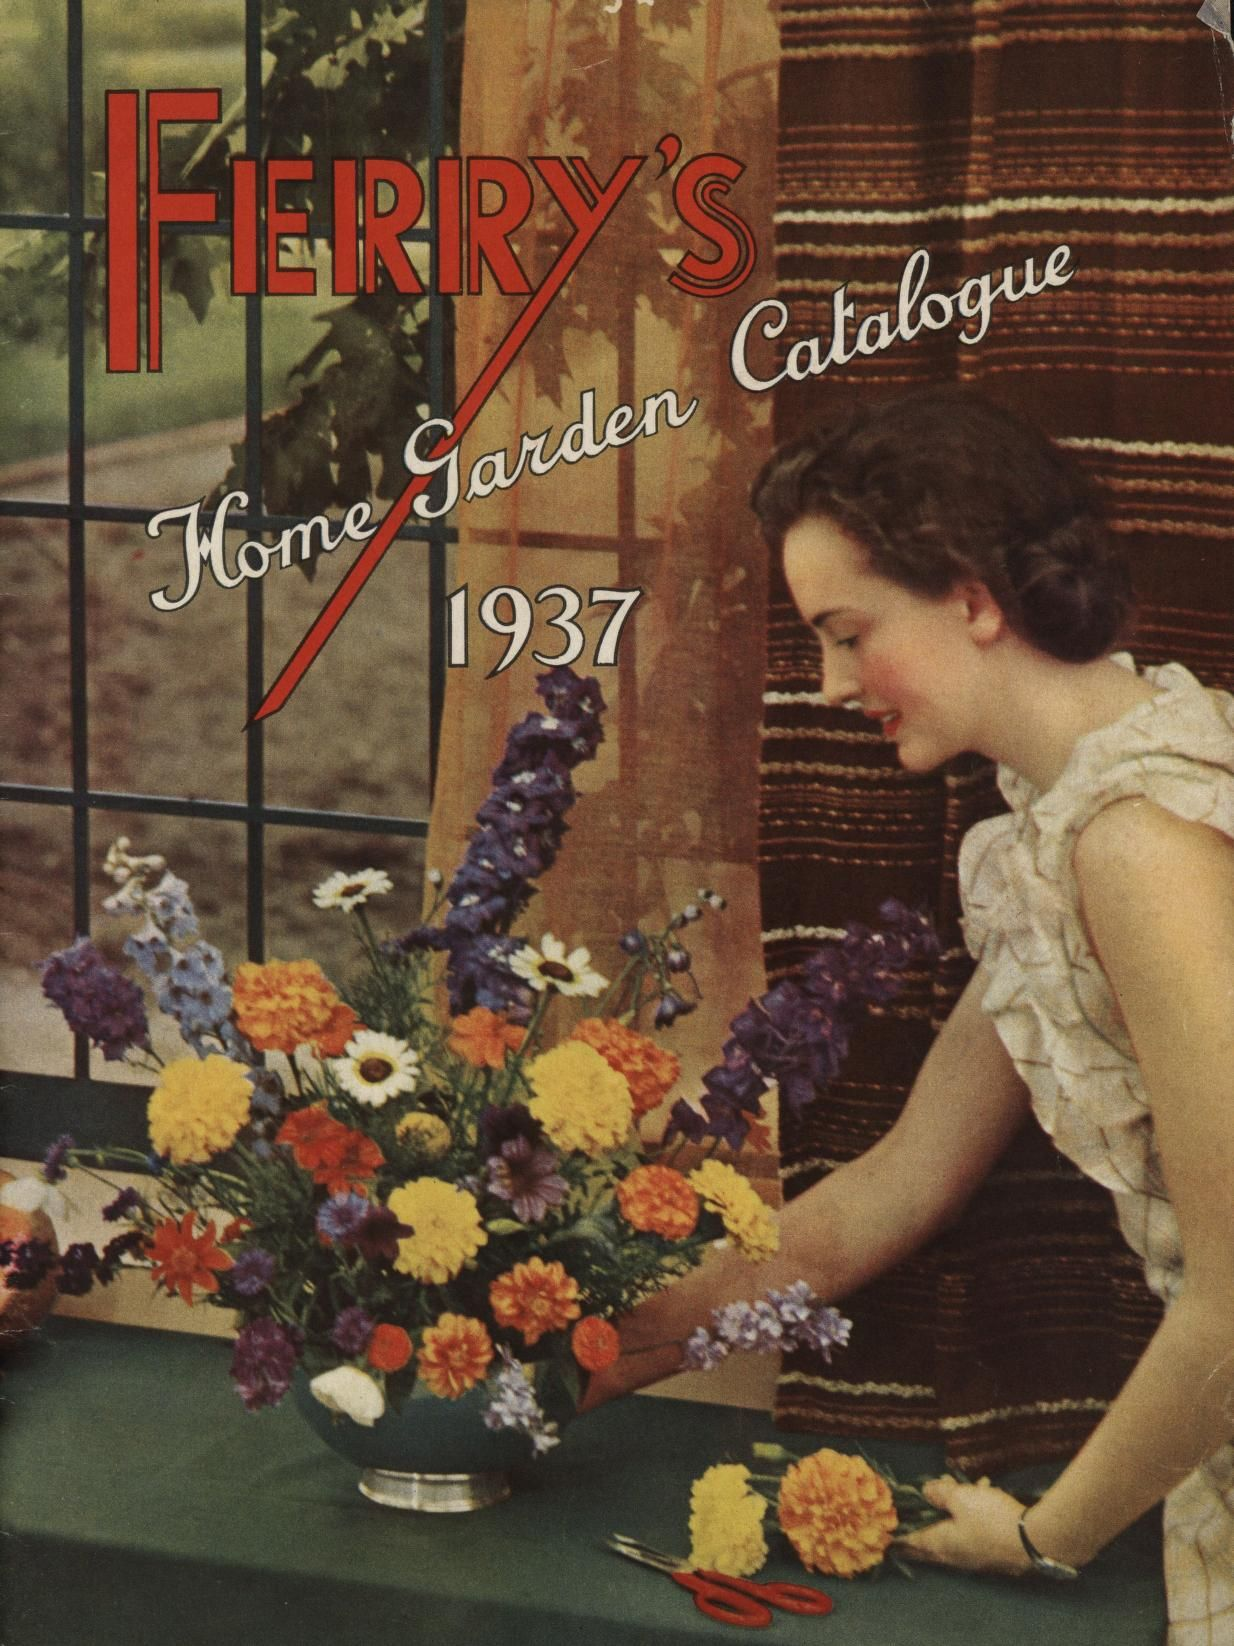 Ferryu0027s Home Garden Catalog 1937 : Ferry Morse Seed Co. : Free Download U0026  Streaming